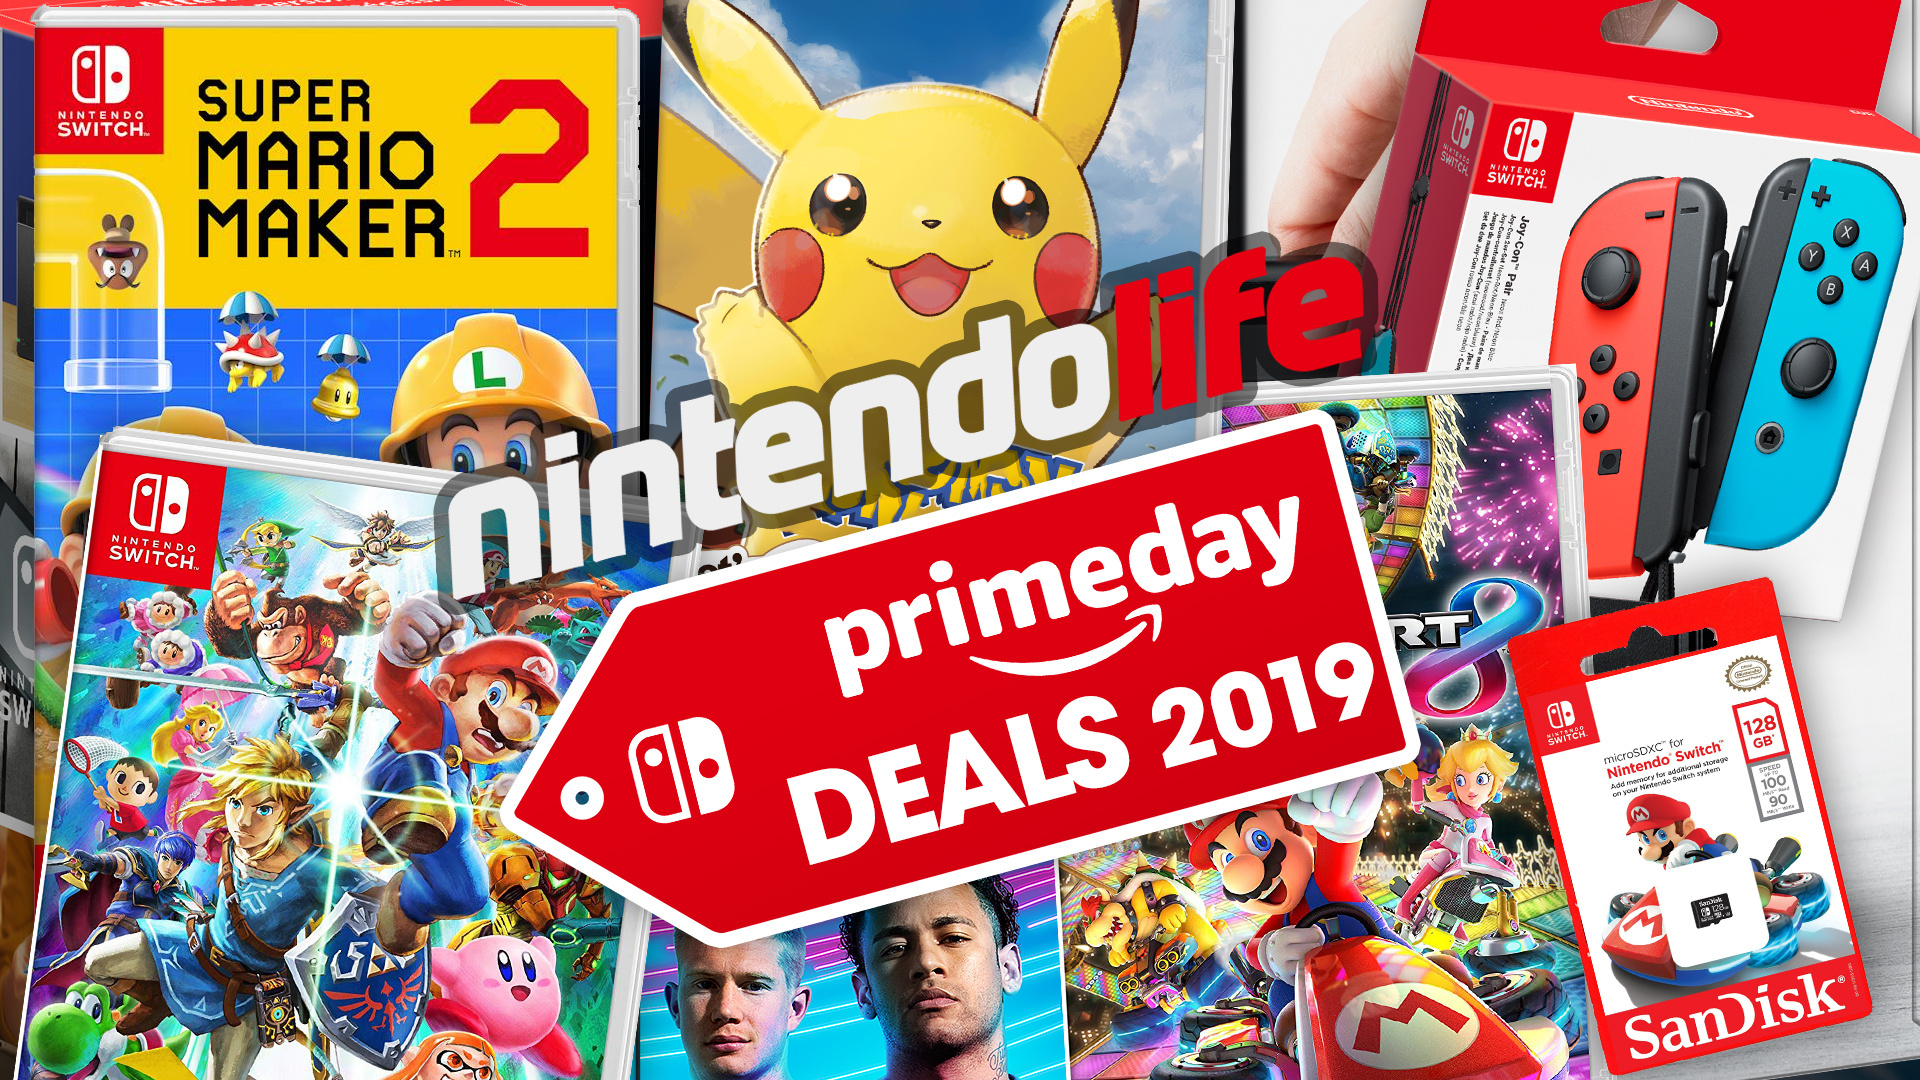 Deals: Grab A Bargain With These Nintendo Switch Console Bundles On Prime Day